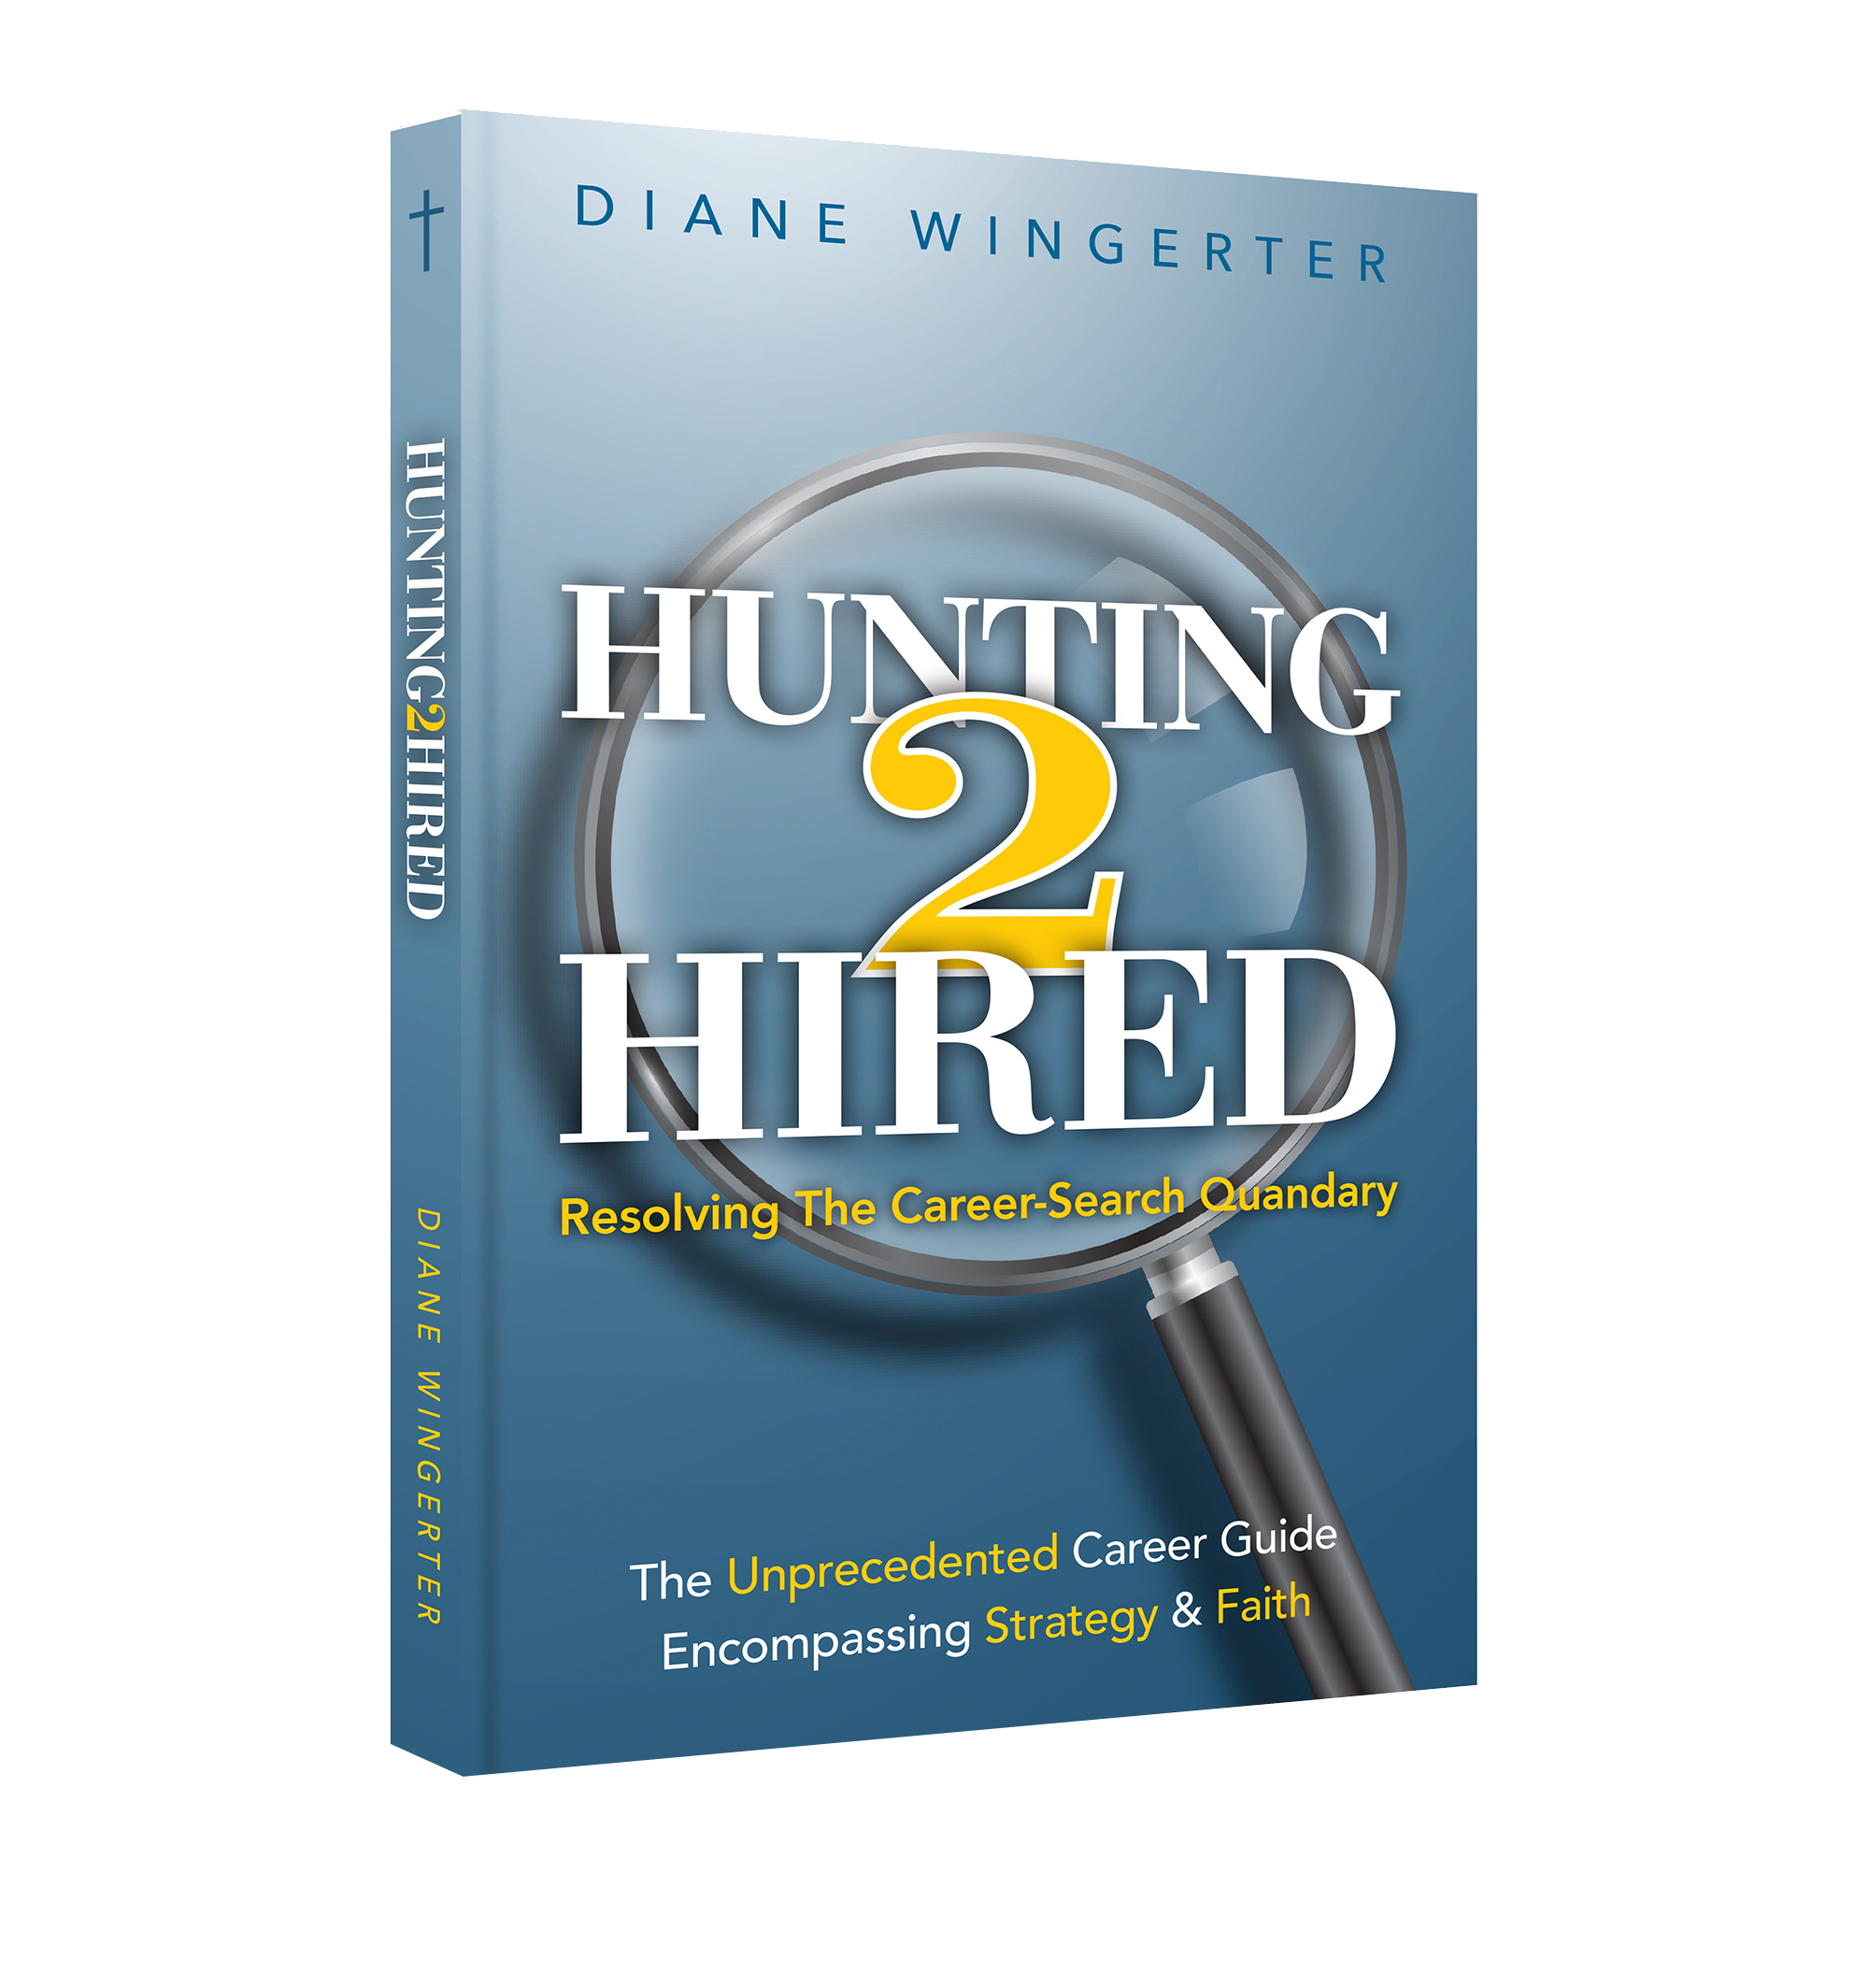 Hunting2Hired, job hunting, book, hired, new career, career strategy, job search, career transition, career coaching